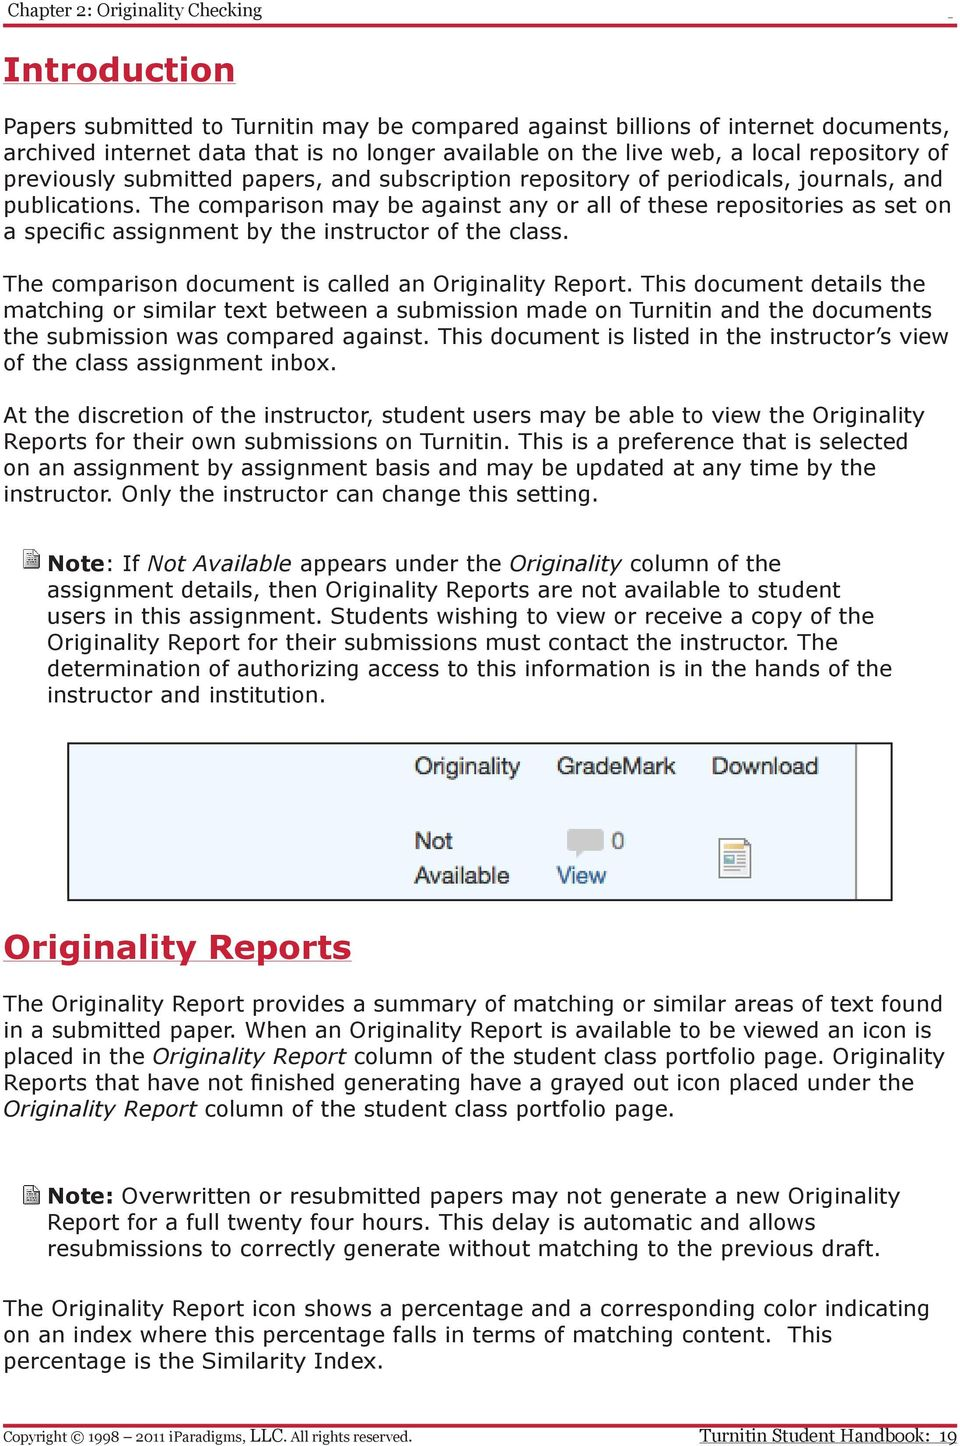 The comparison may be against any or all of these repositories as set on a specific assignment by the instructor of the class. The comparison document is called an Originality Report.